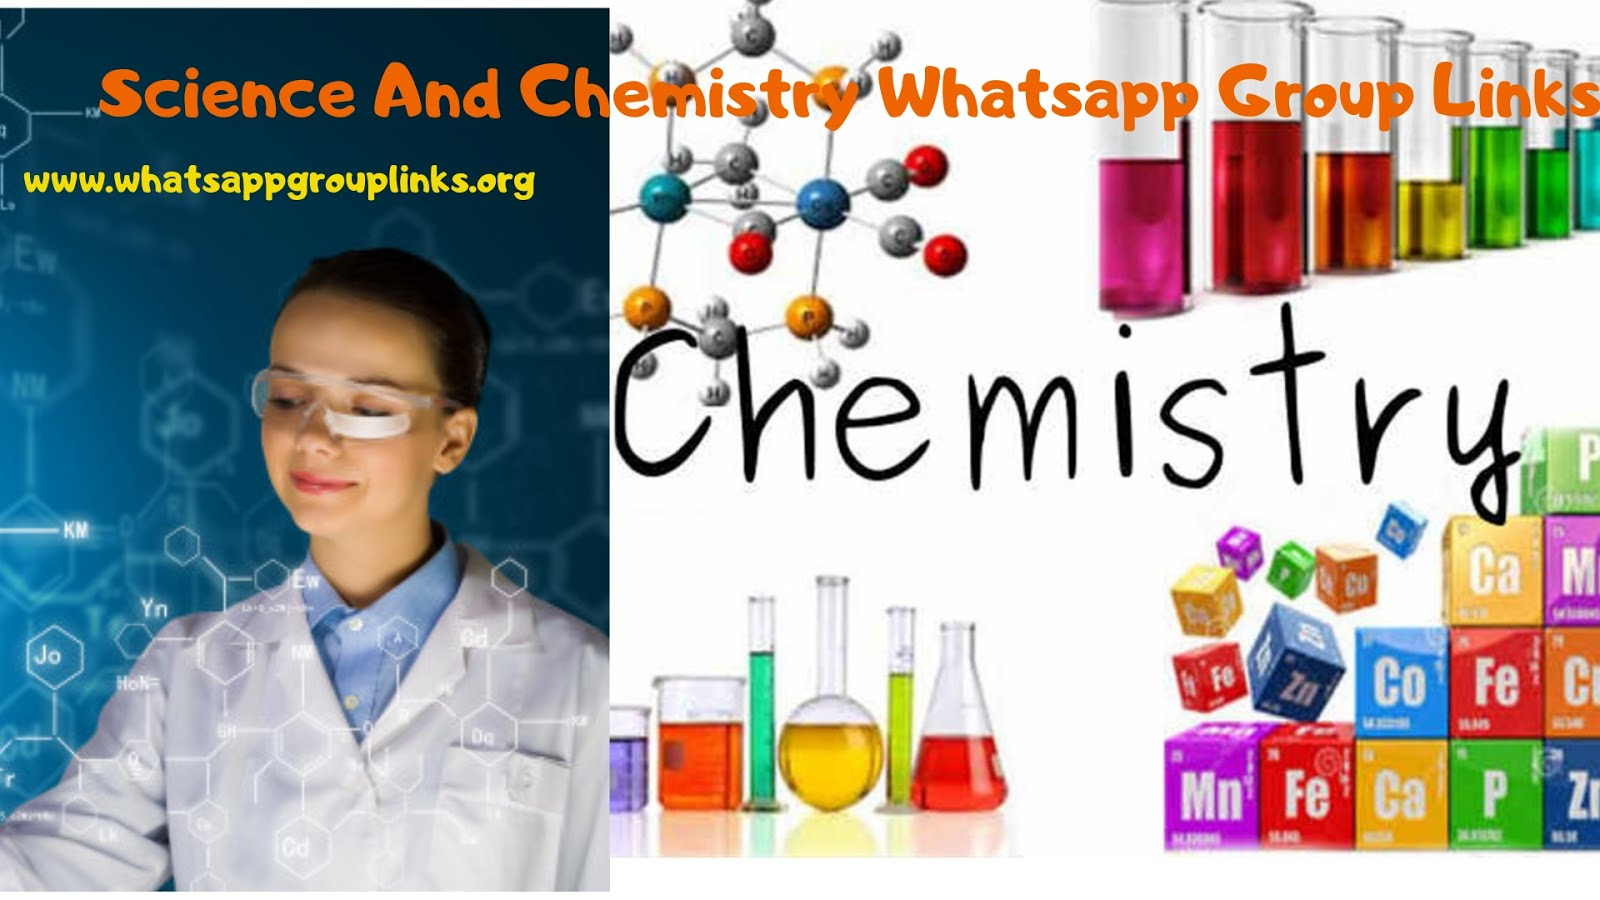 Join Science And Chemistry Whatsapp Group Links List - Whatsapp